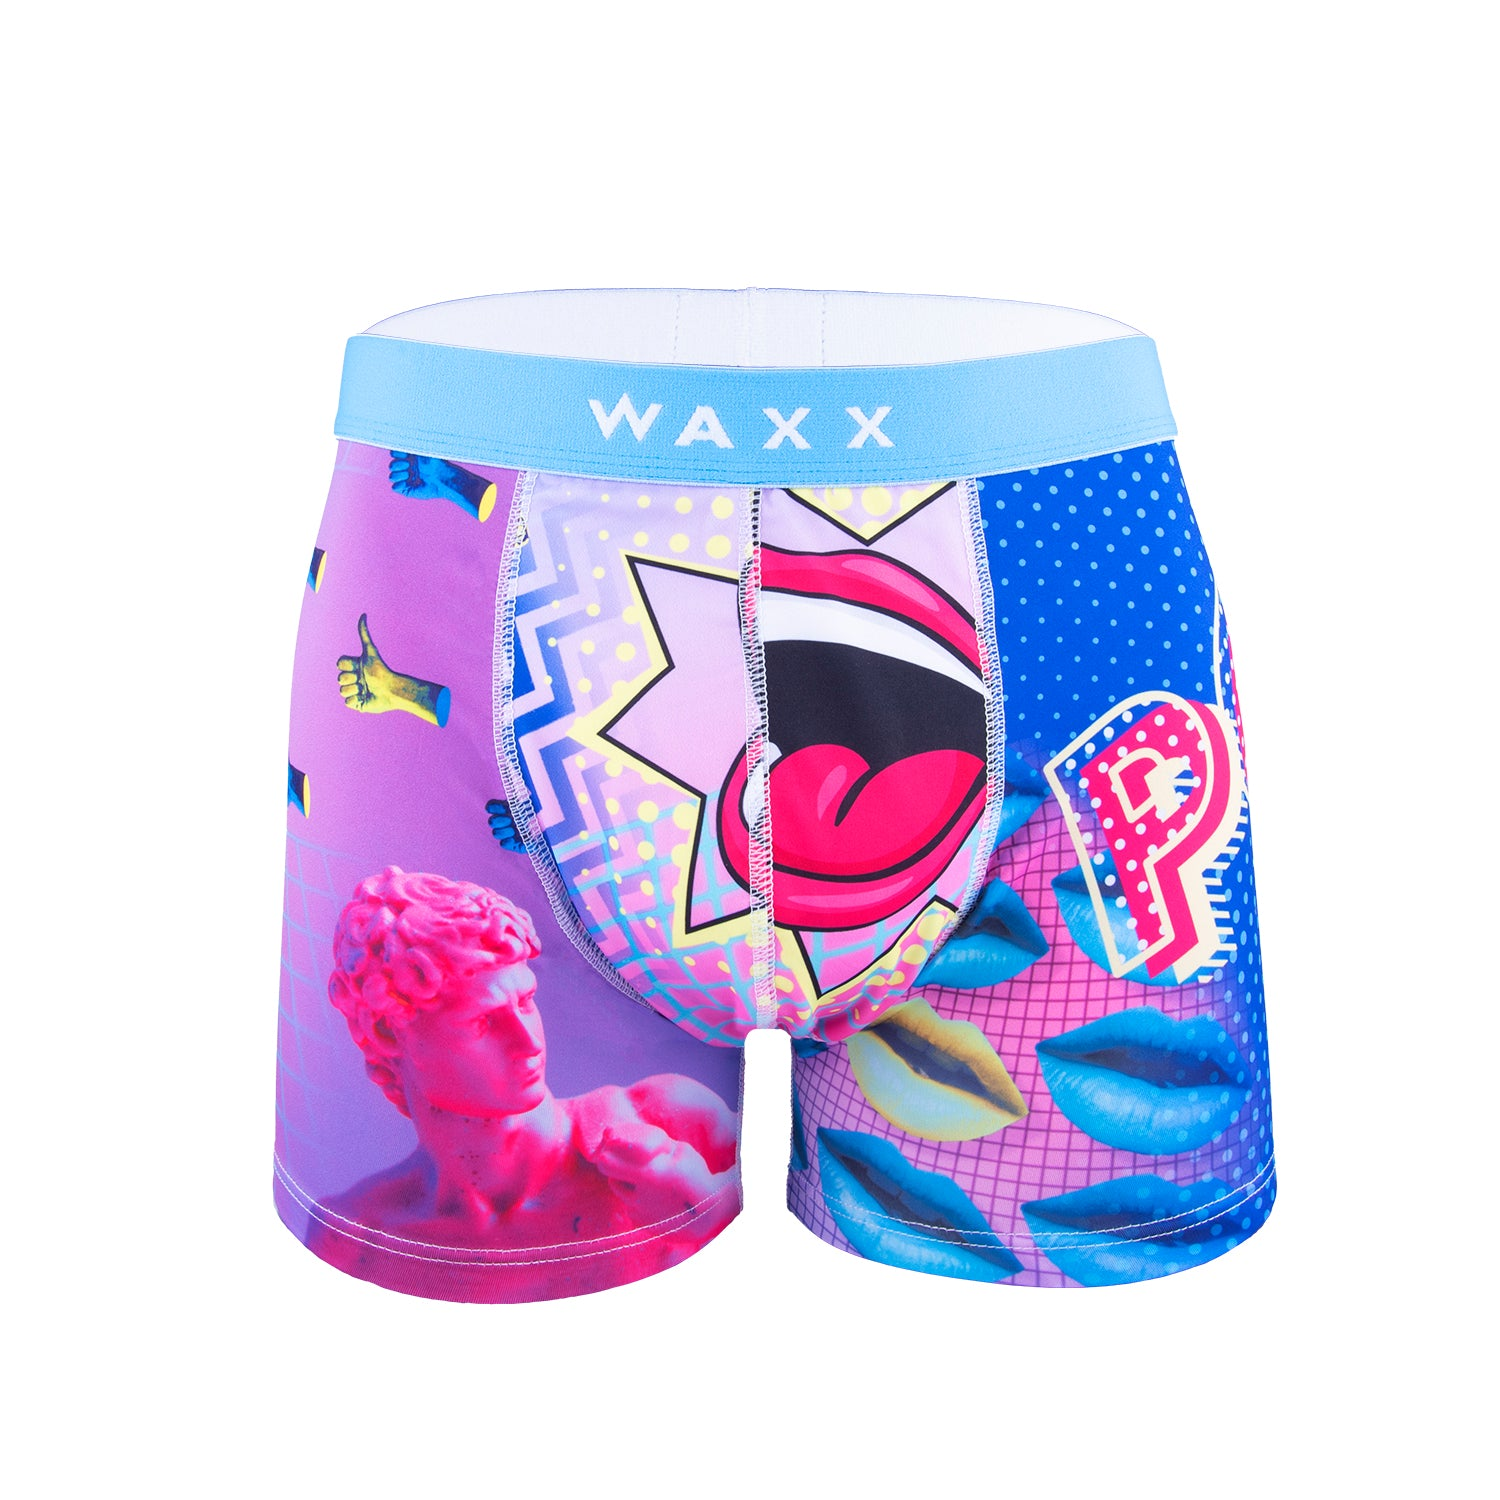 Waxx Men's Trunk Boxer Short Popsy